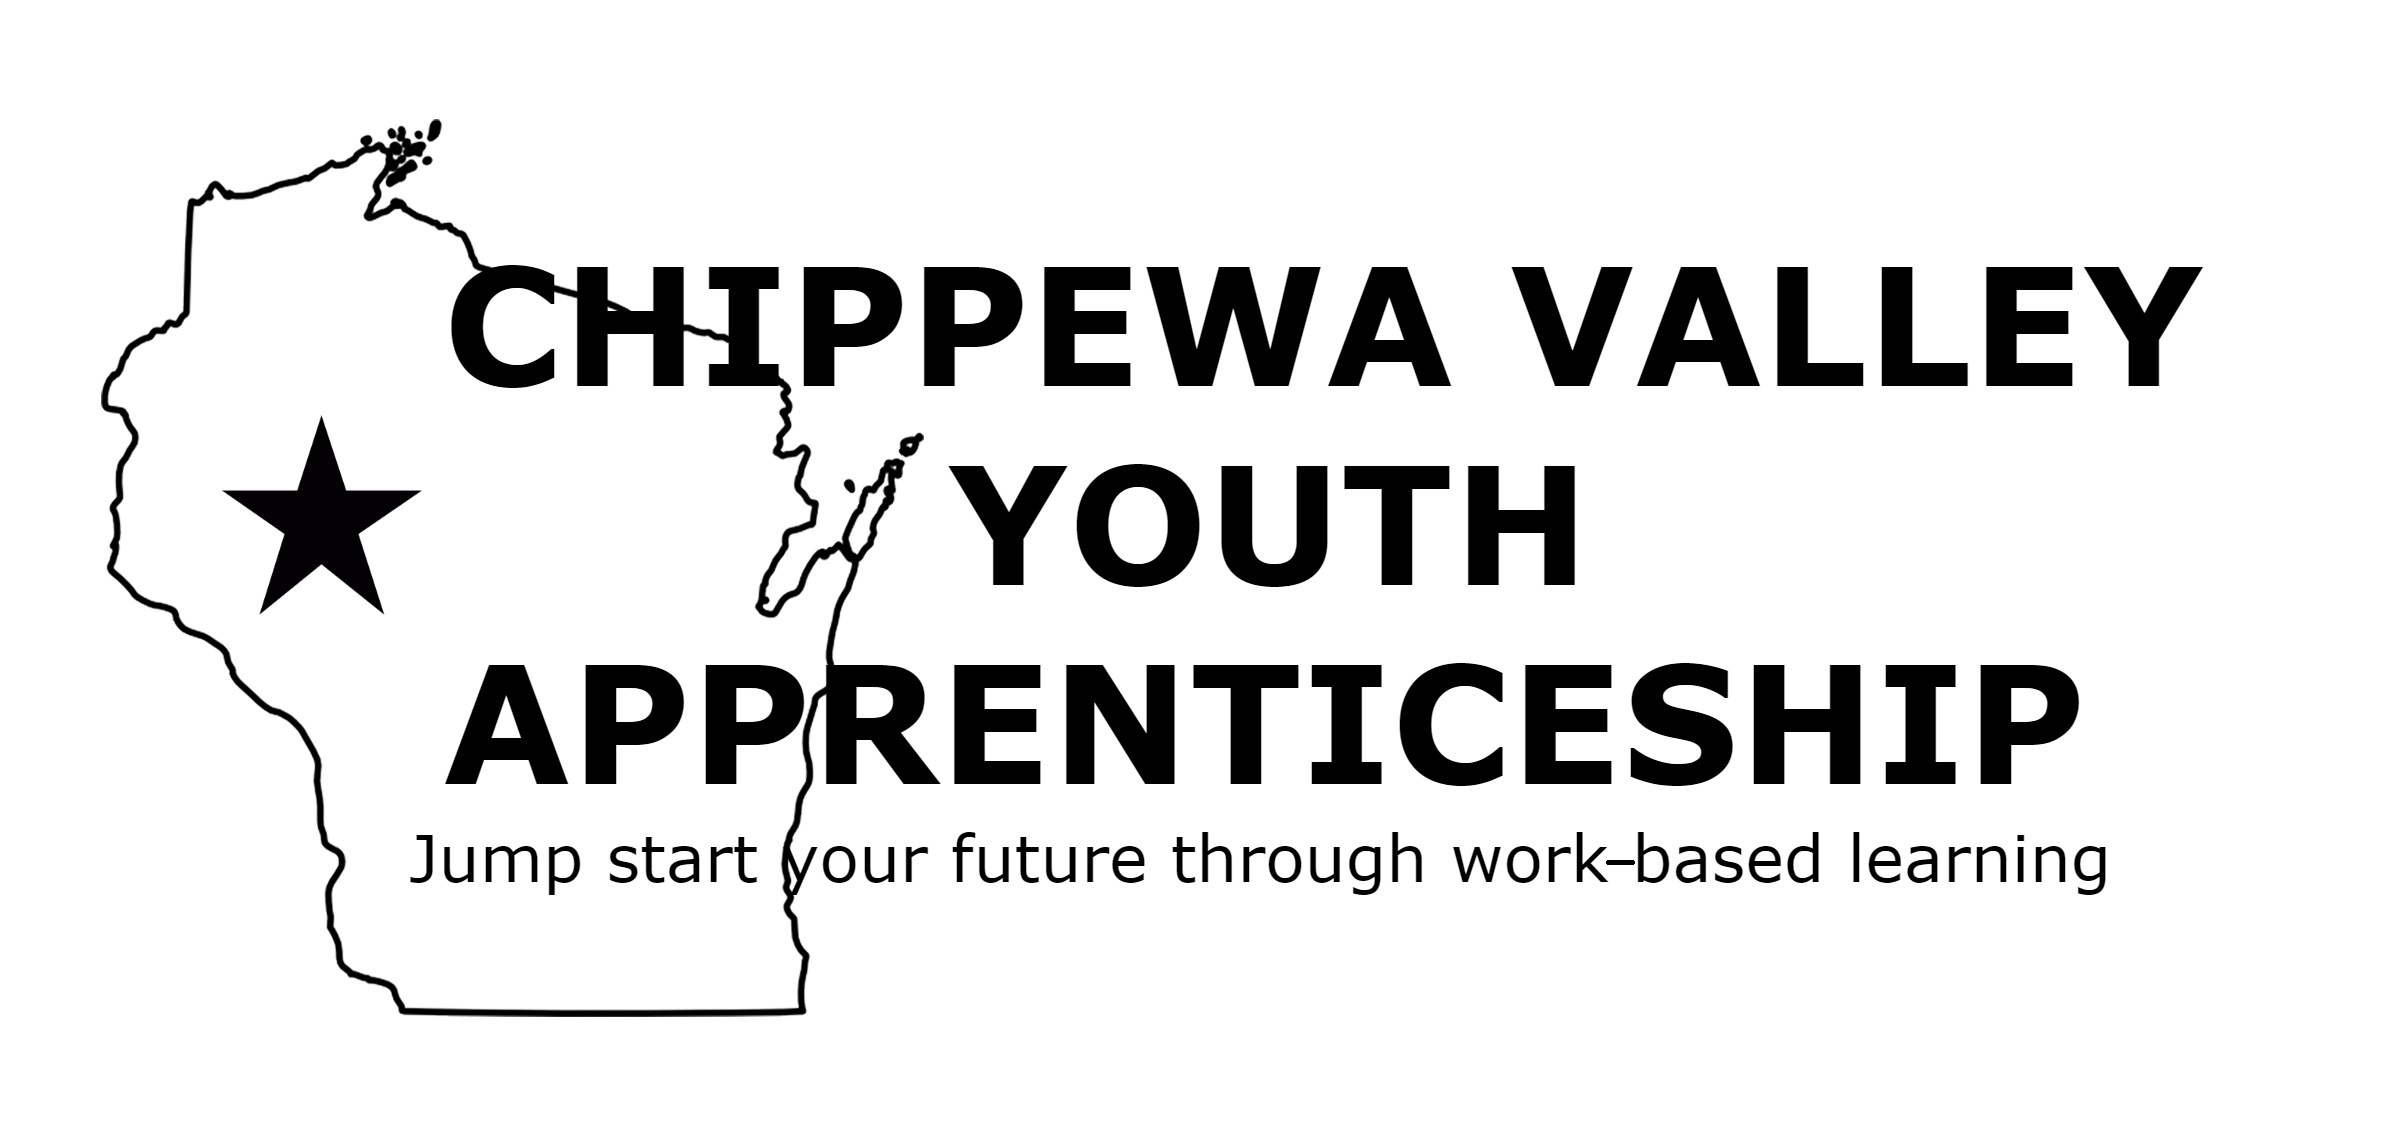 Youth Apprenticeship (YA) integrates school-based and work-based learning to instruct students in employability and occupational skills defined by Wisconsin industries. Local programs provide training based on statewide youth apprenticeship curriculum guidelines, endorsed by business and industry. Students are instructed by qualified teachers and skilled worksite mentors. Students are simultaneously enrolled in academic classes to meet high school graduation requirements, in a youth apprenticeship related instruction class, and are employed by a participating employer under the supervision of a skilled mentor.